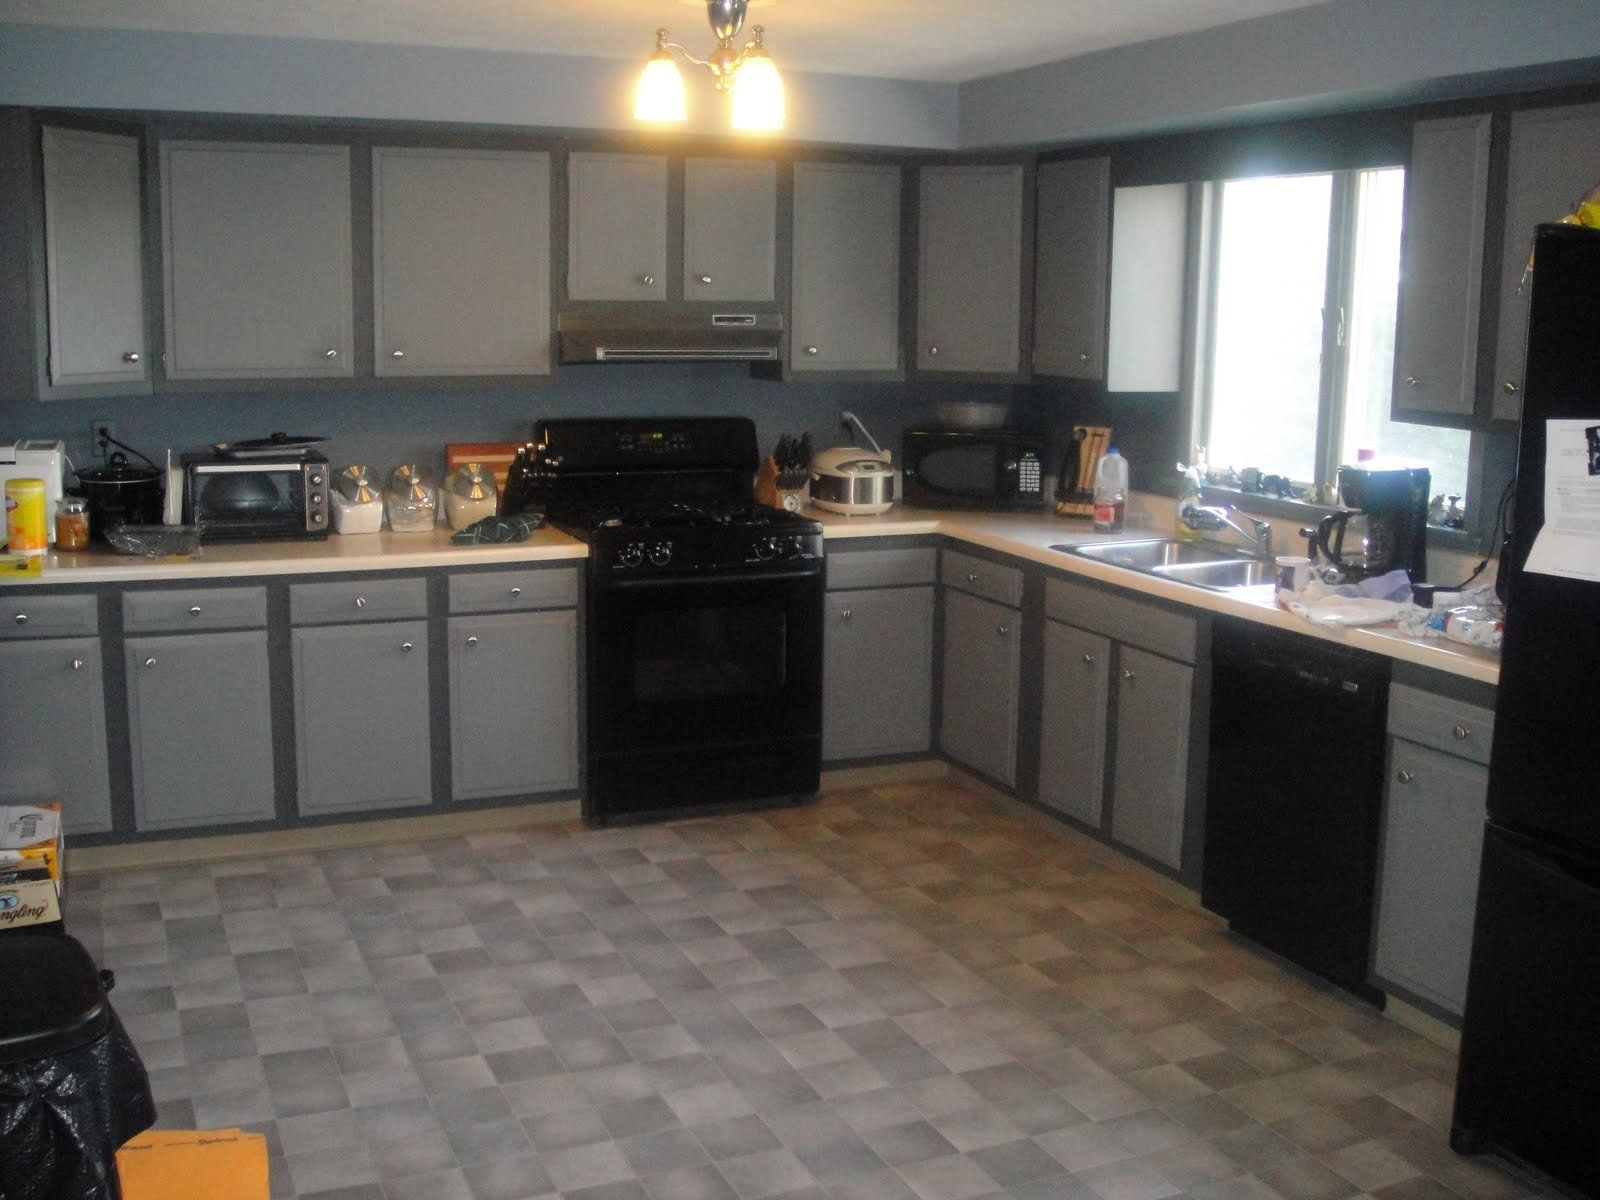 Furniture kitchen cabinets pictures with appliances for for Kitchen paint colors gray